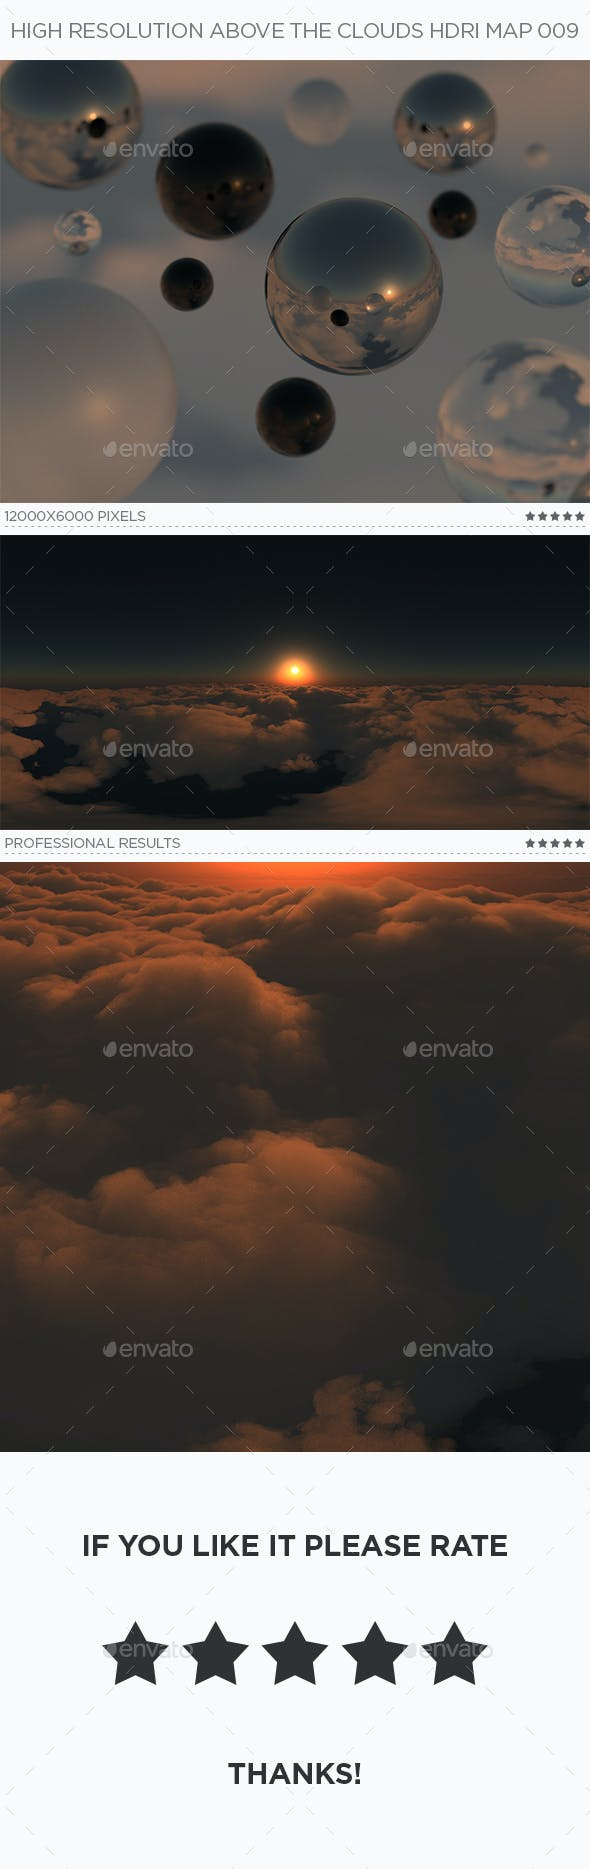 High Resolution Above The Clouds HDRi Map 009 - 3DOcean Item for Sale